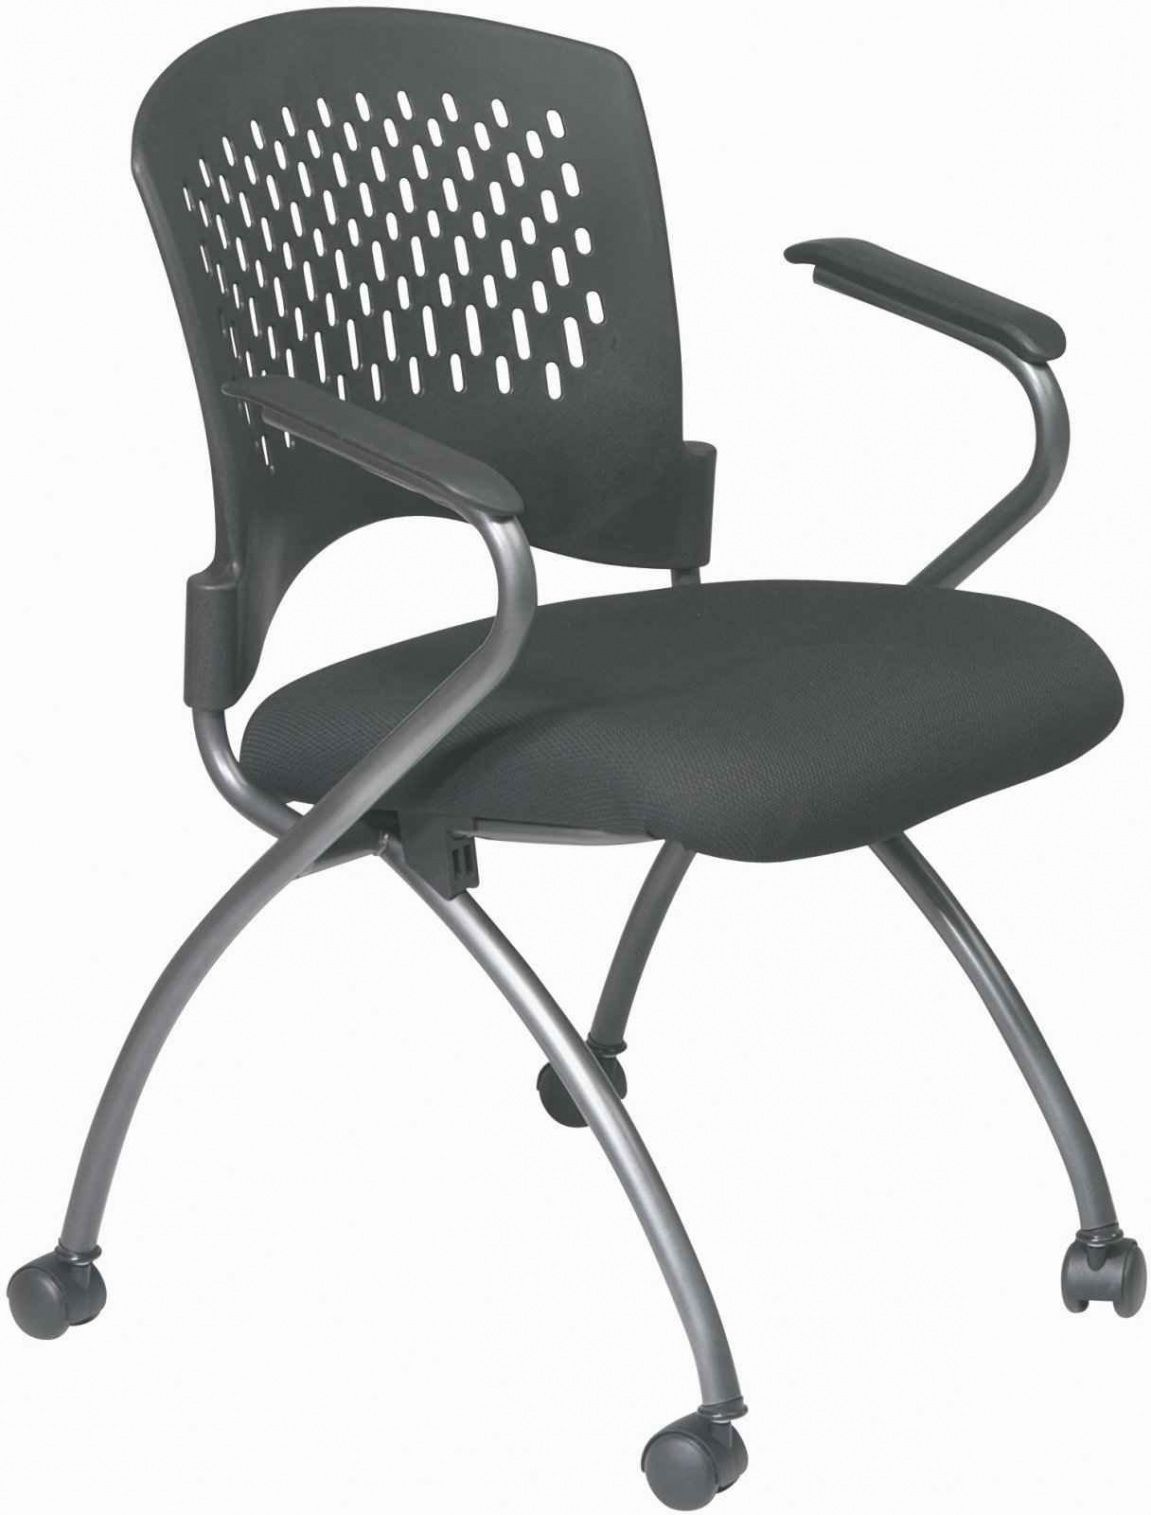 Folding Office Chair with Wheels - Luxury Home Office Furniture ...